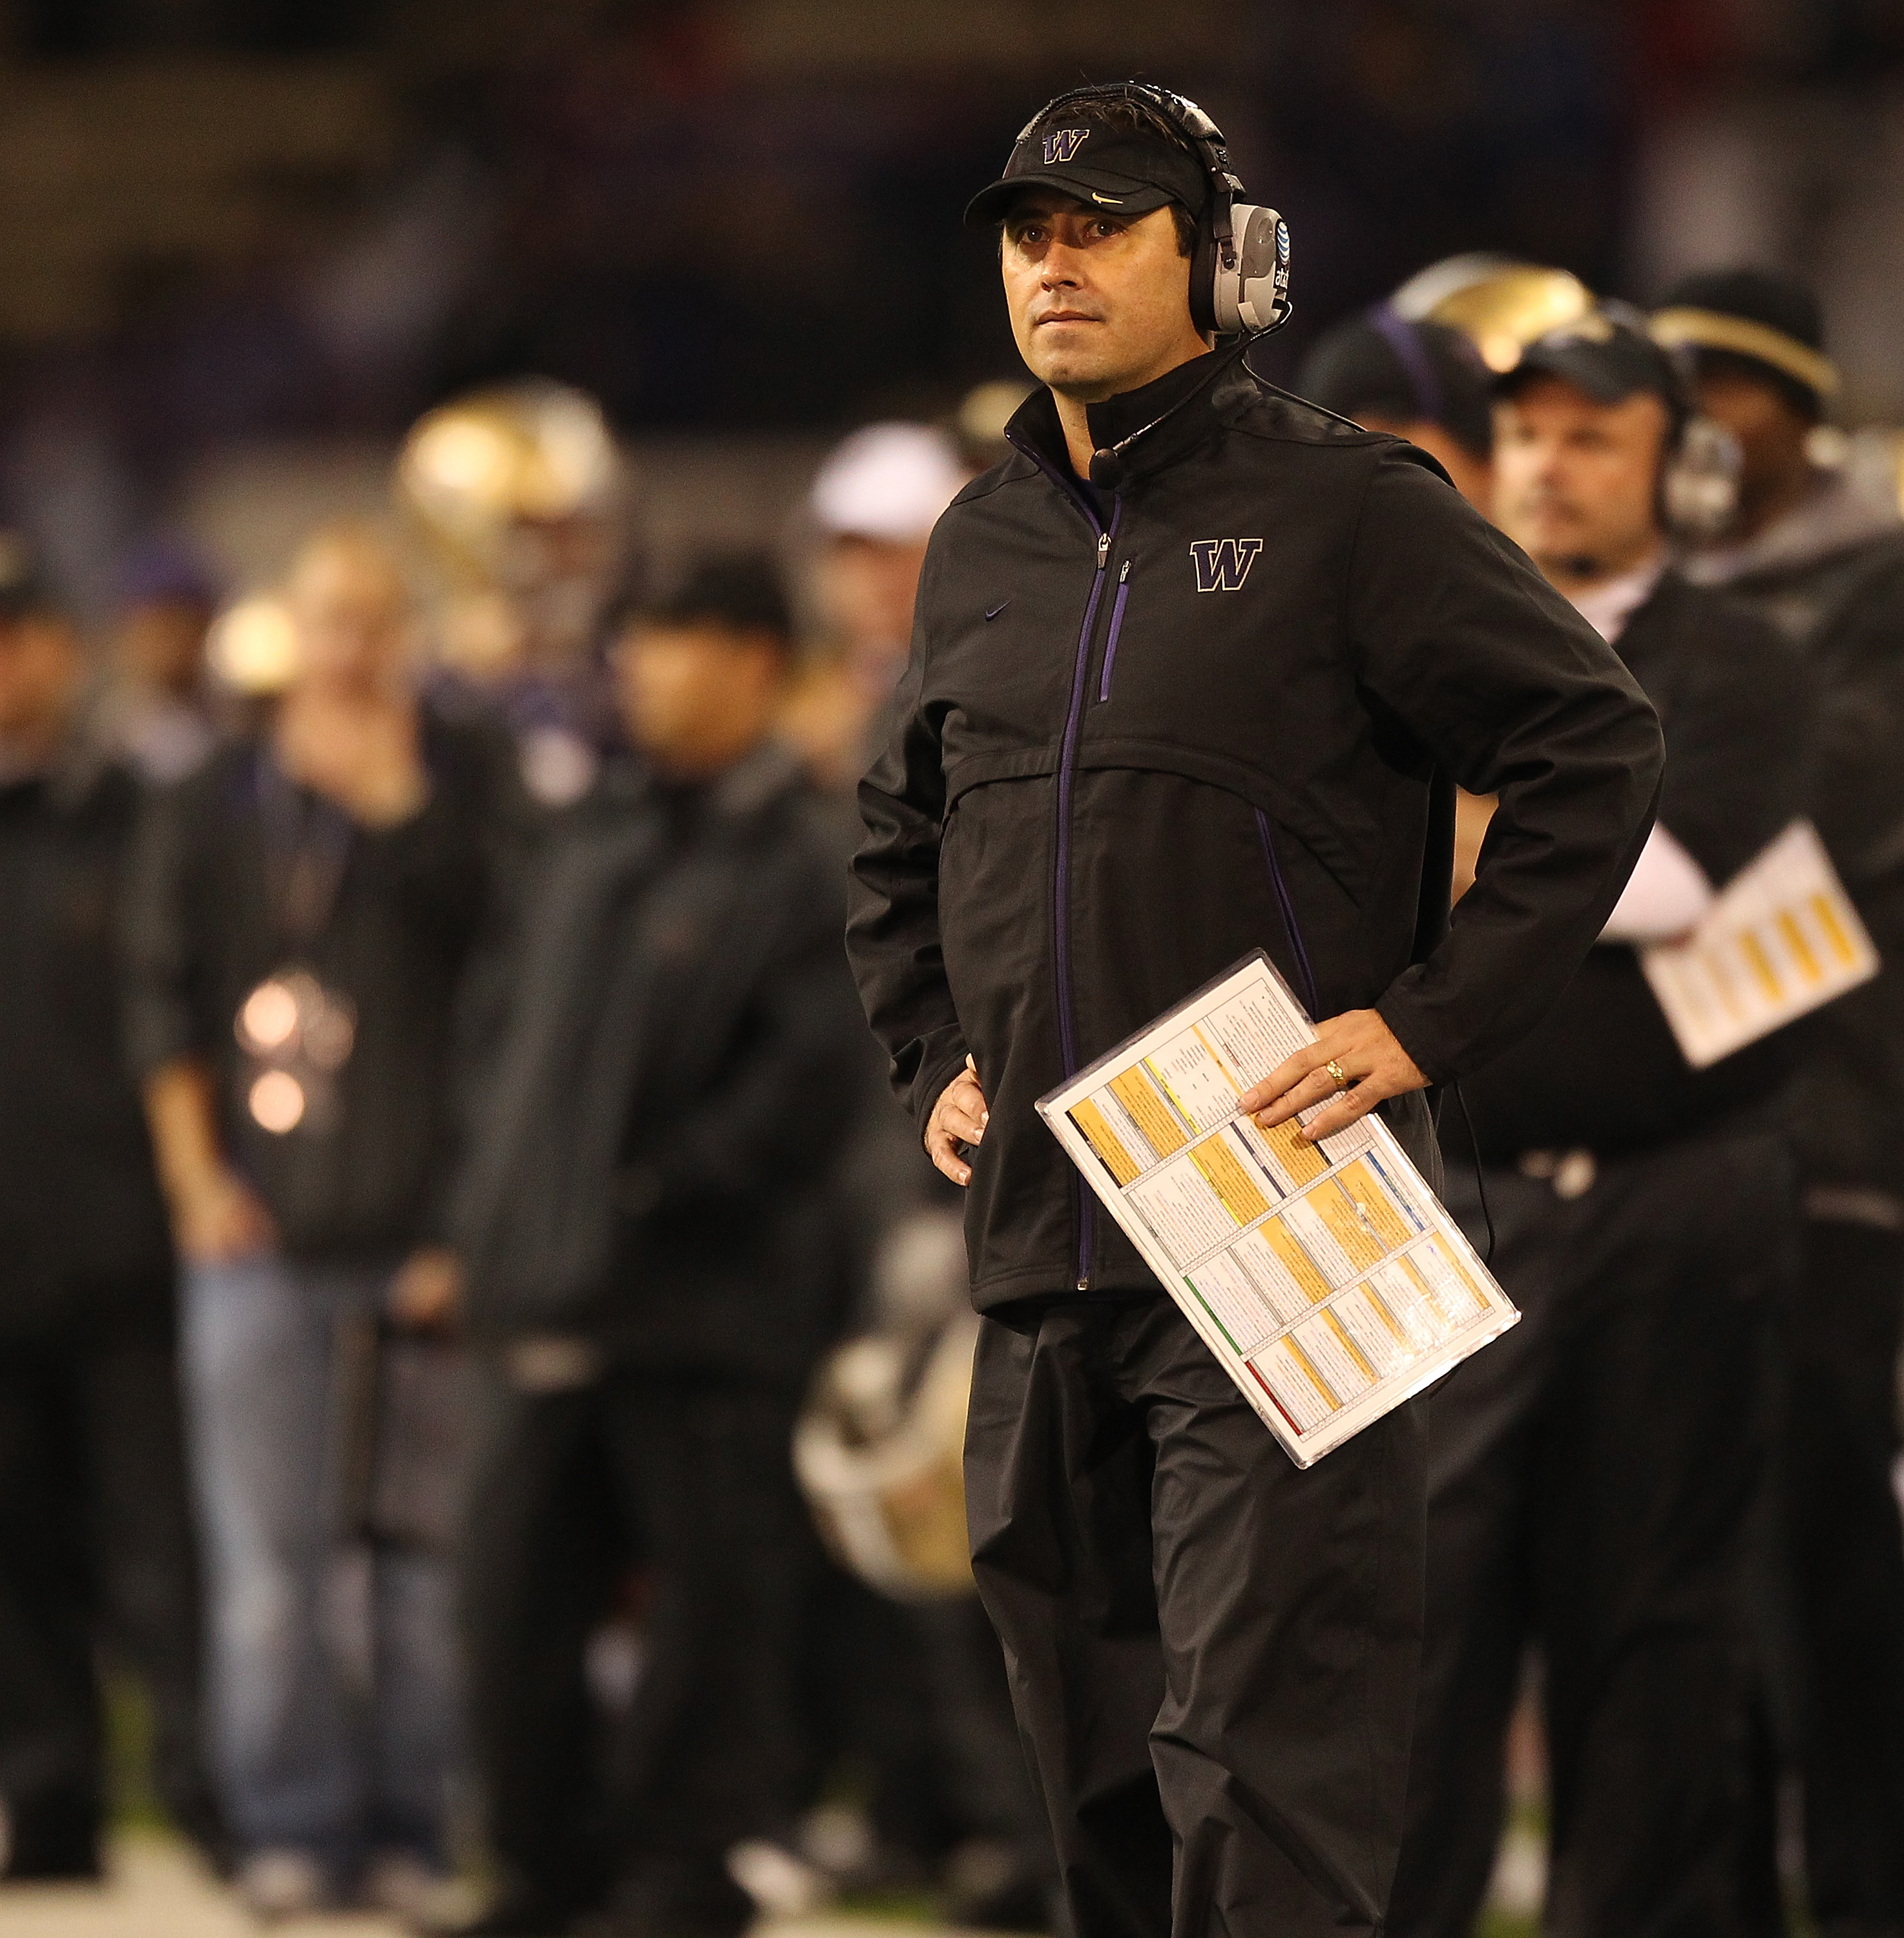 SEATTLE - OCTOBER 30:  Head coach Steve Sarkisian of the Washington Huskies looks on during the game against the Stanford Cardinal on October 30, 2010 at Husky Stadium in Seattle, Washington. Stanford defeated Washington 41-0. (Photo by Otto Greule Jr/Get